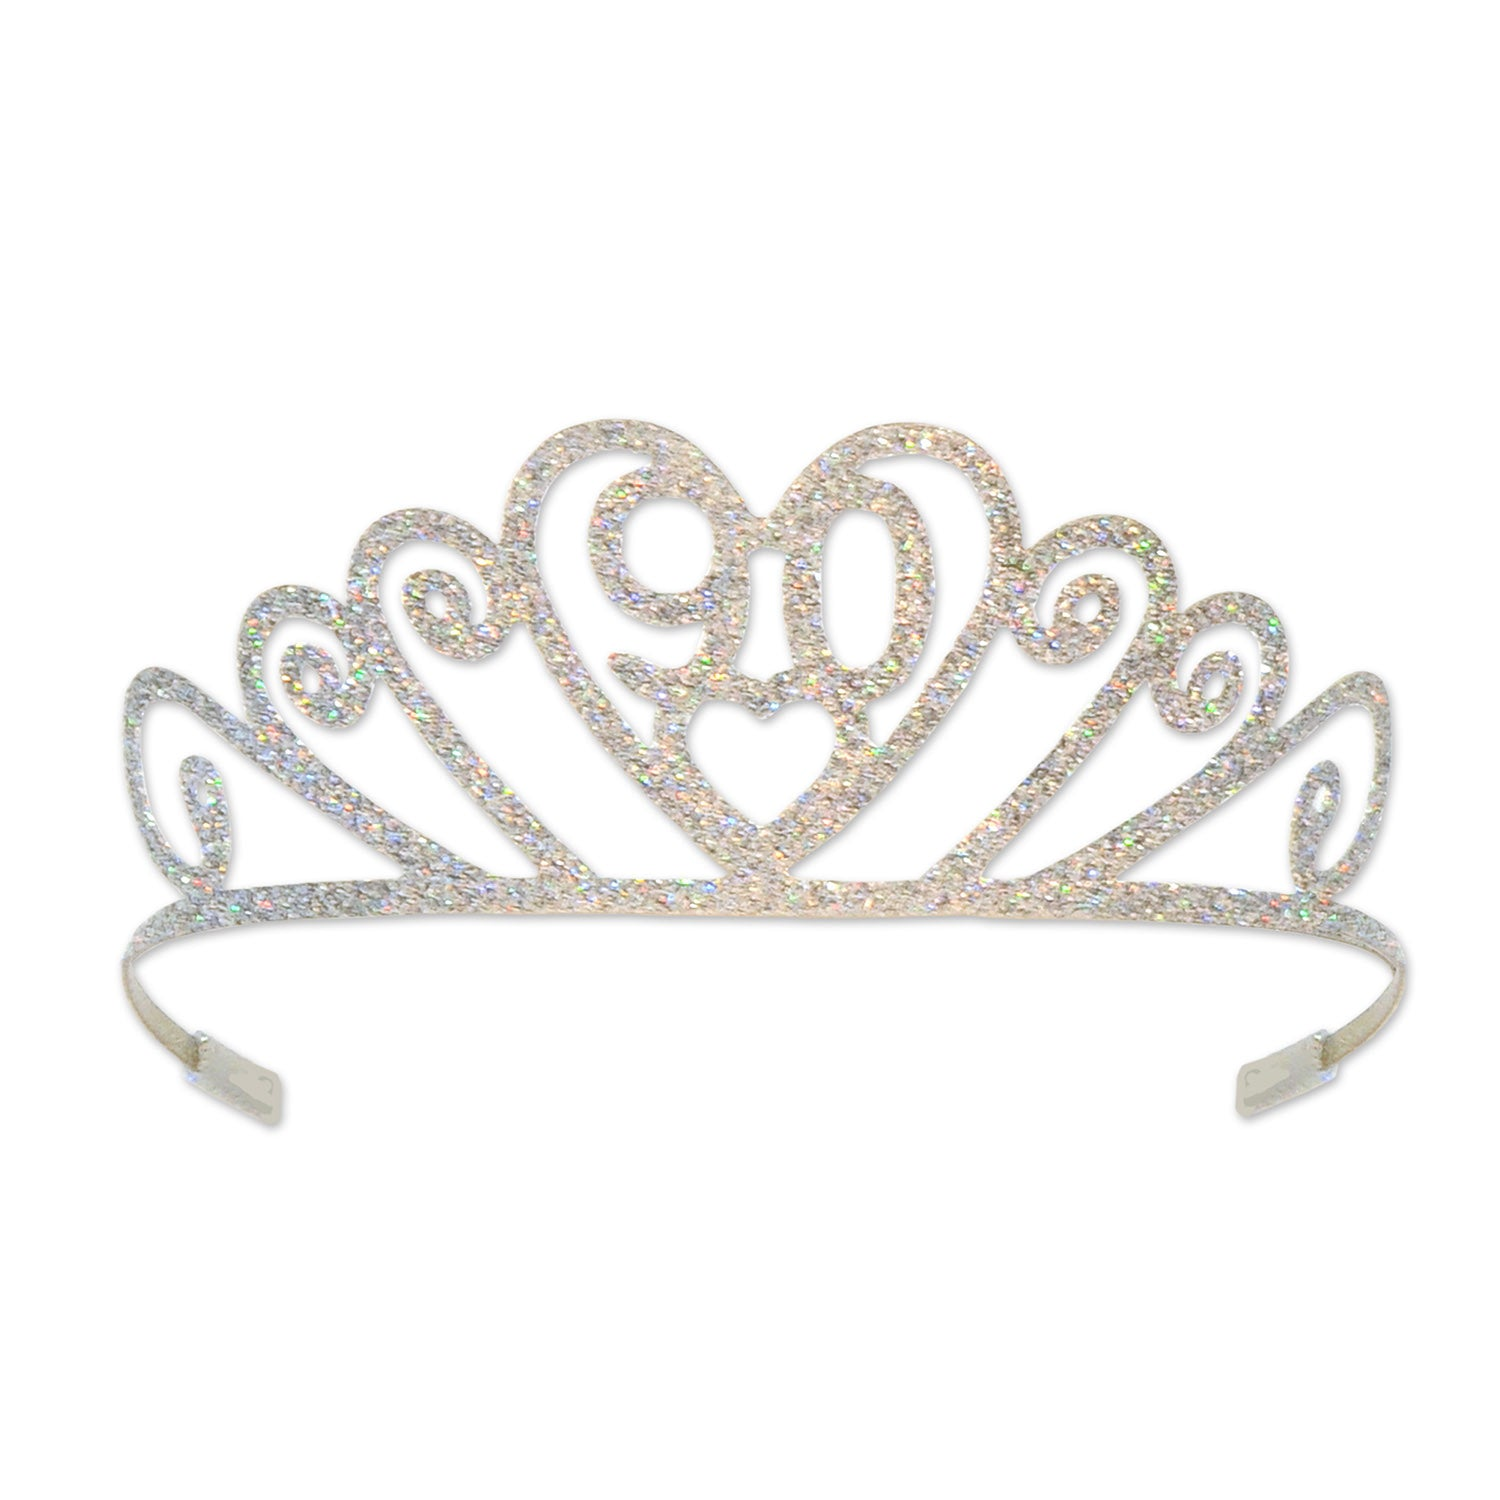 Glittered Metal 90 Tiara by Beistle - 90th Birthday Party Decorations